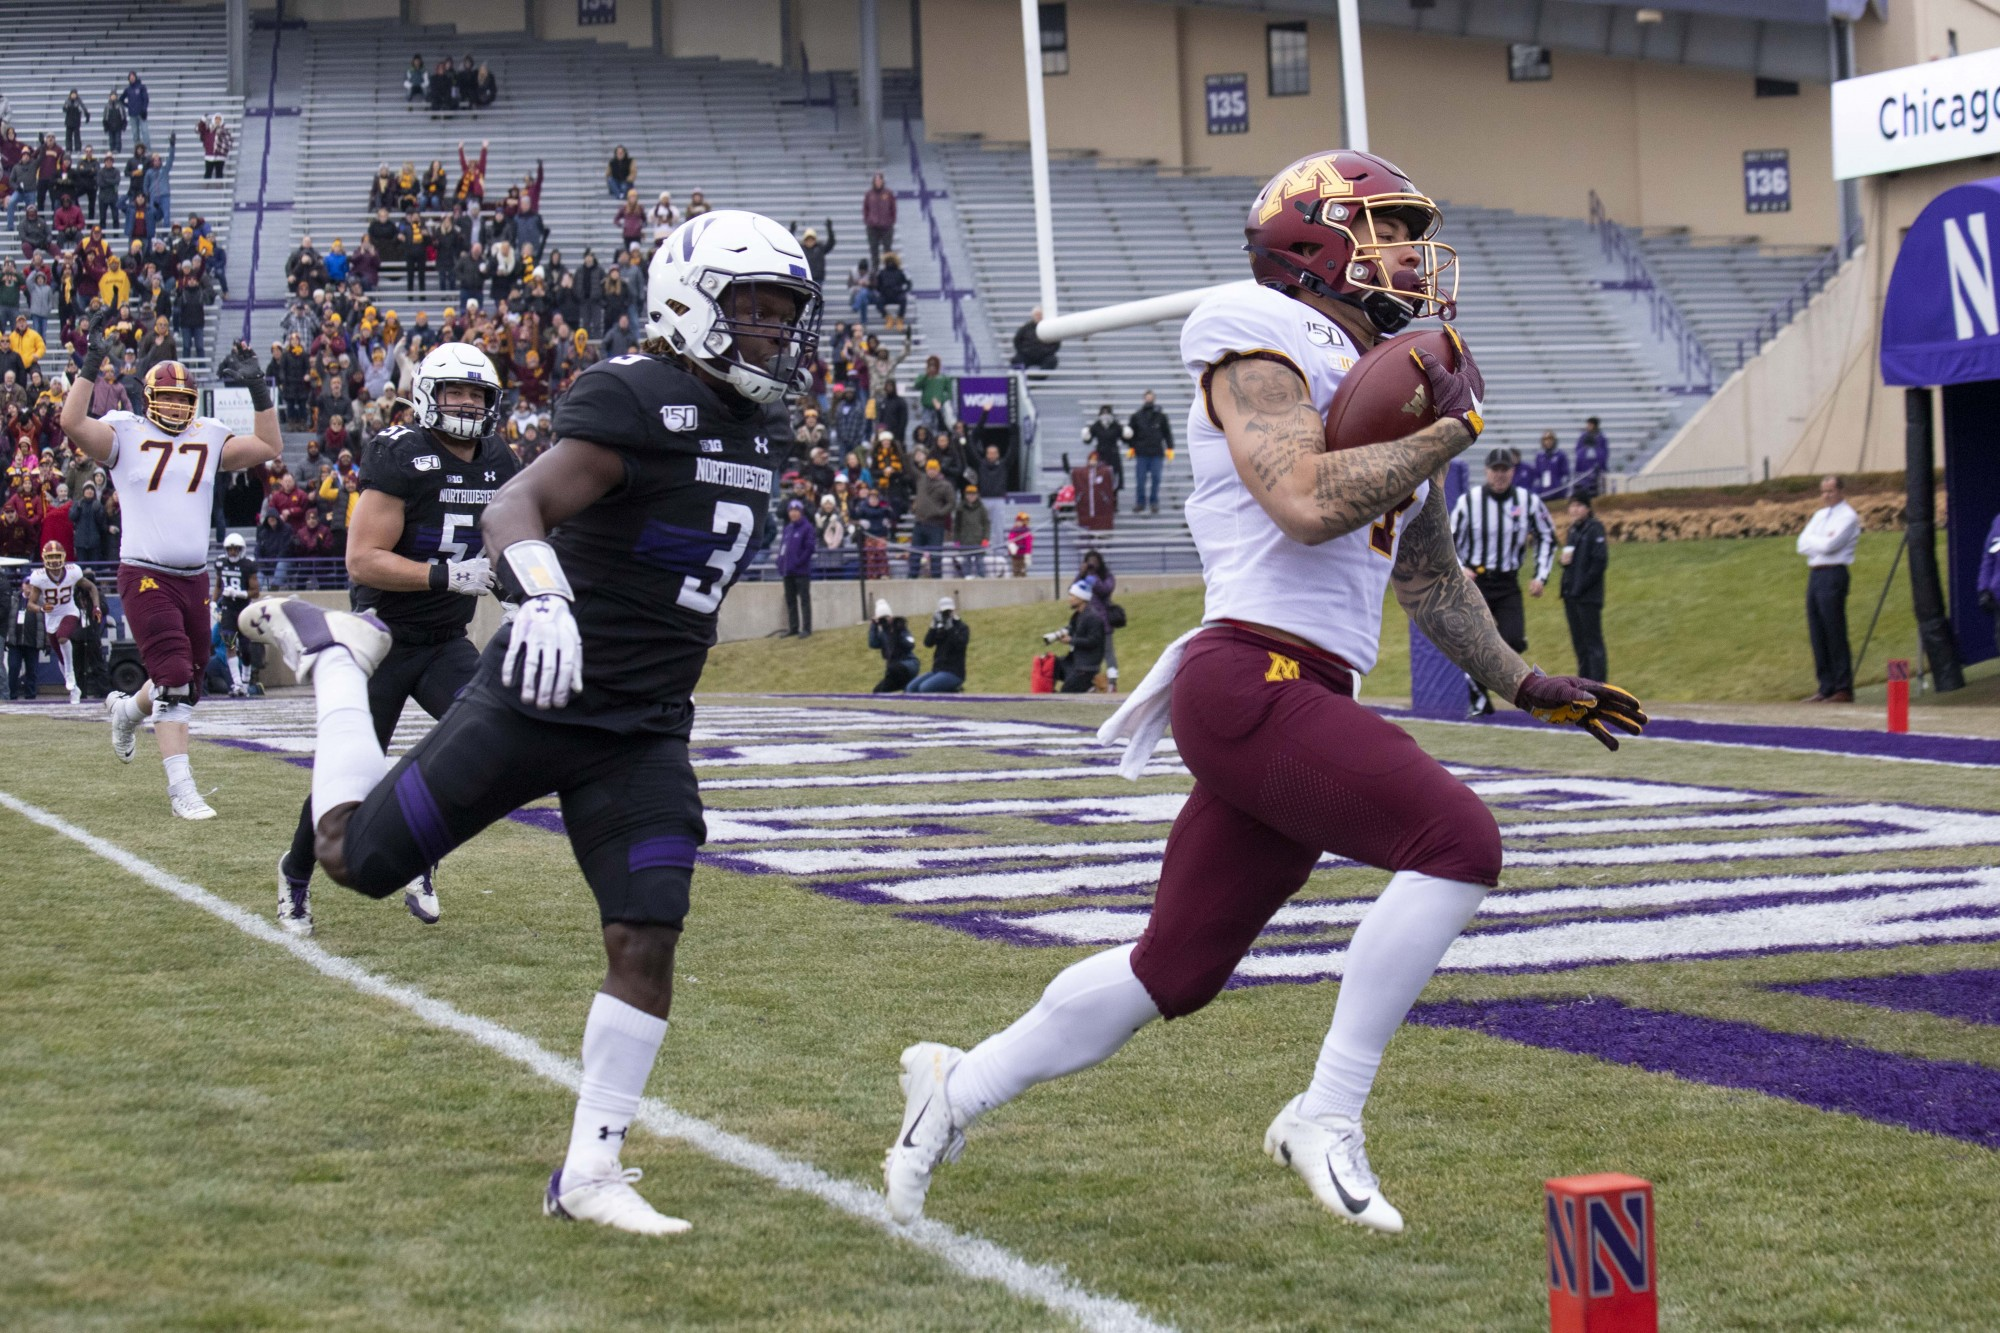 Running back Shannon Brooks carries the ball into the end zone at Ryan Field during the game against the Northwestern Wildcats on Saturday, Nov. 23. The Gophers earned a 38-22 victory bringing their record to 10-1.